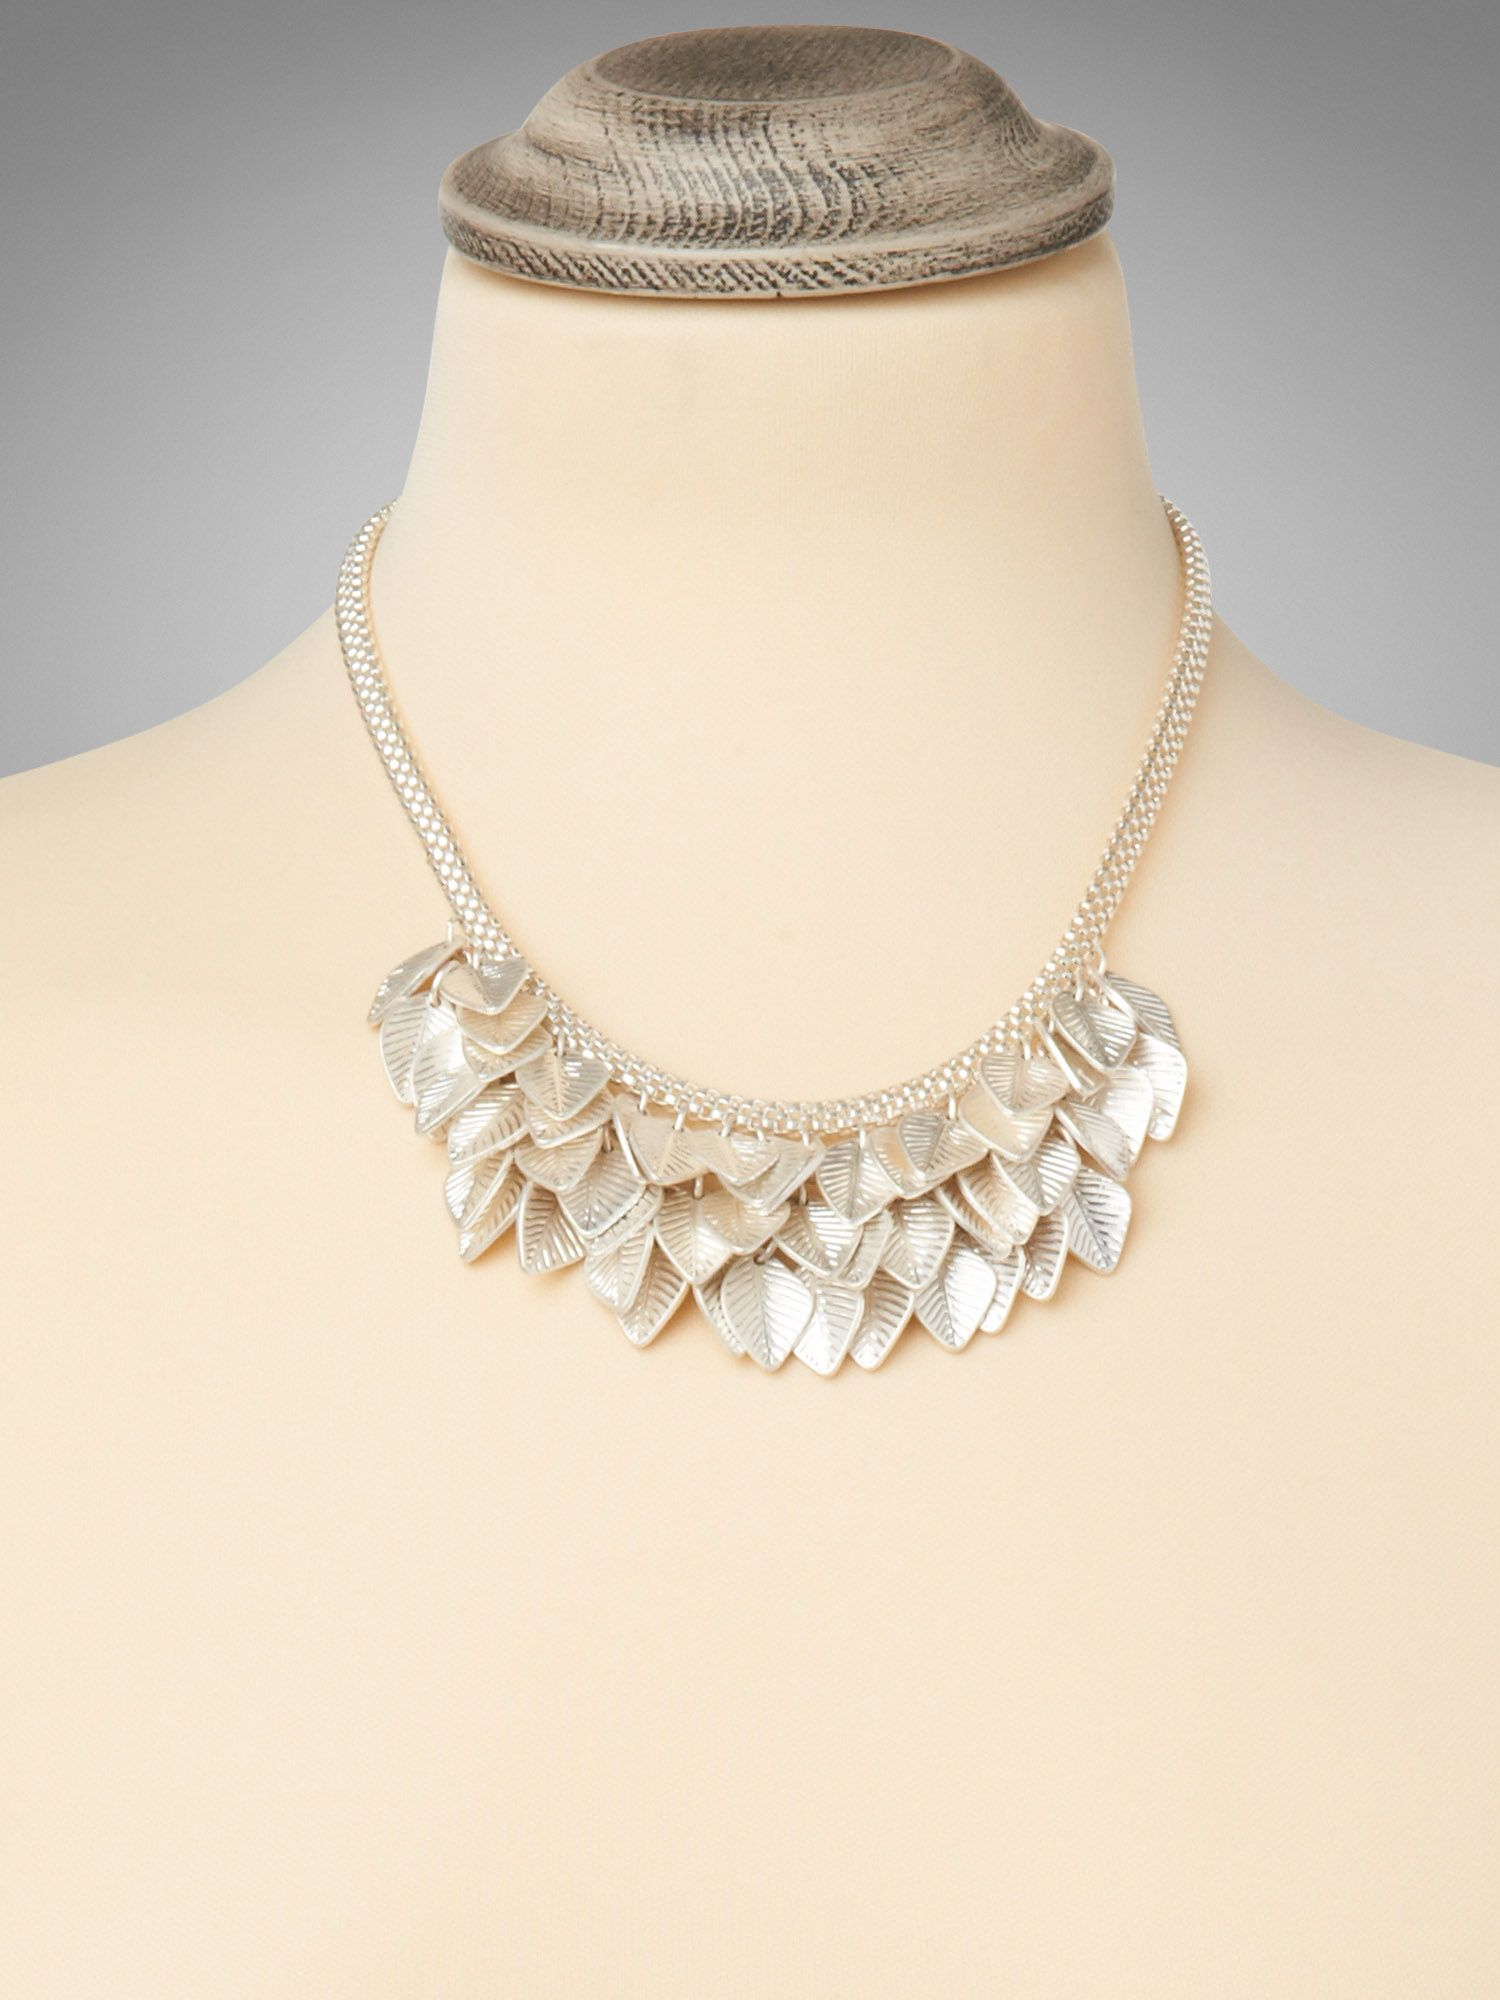 Lia bunched leaf necklace